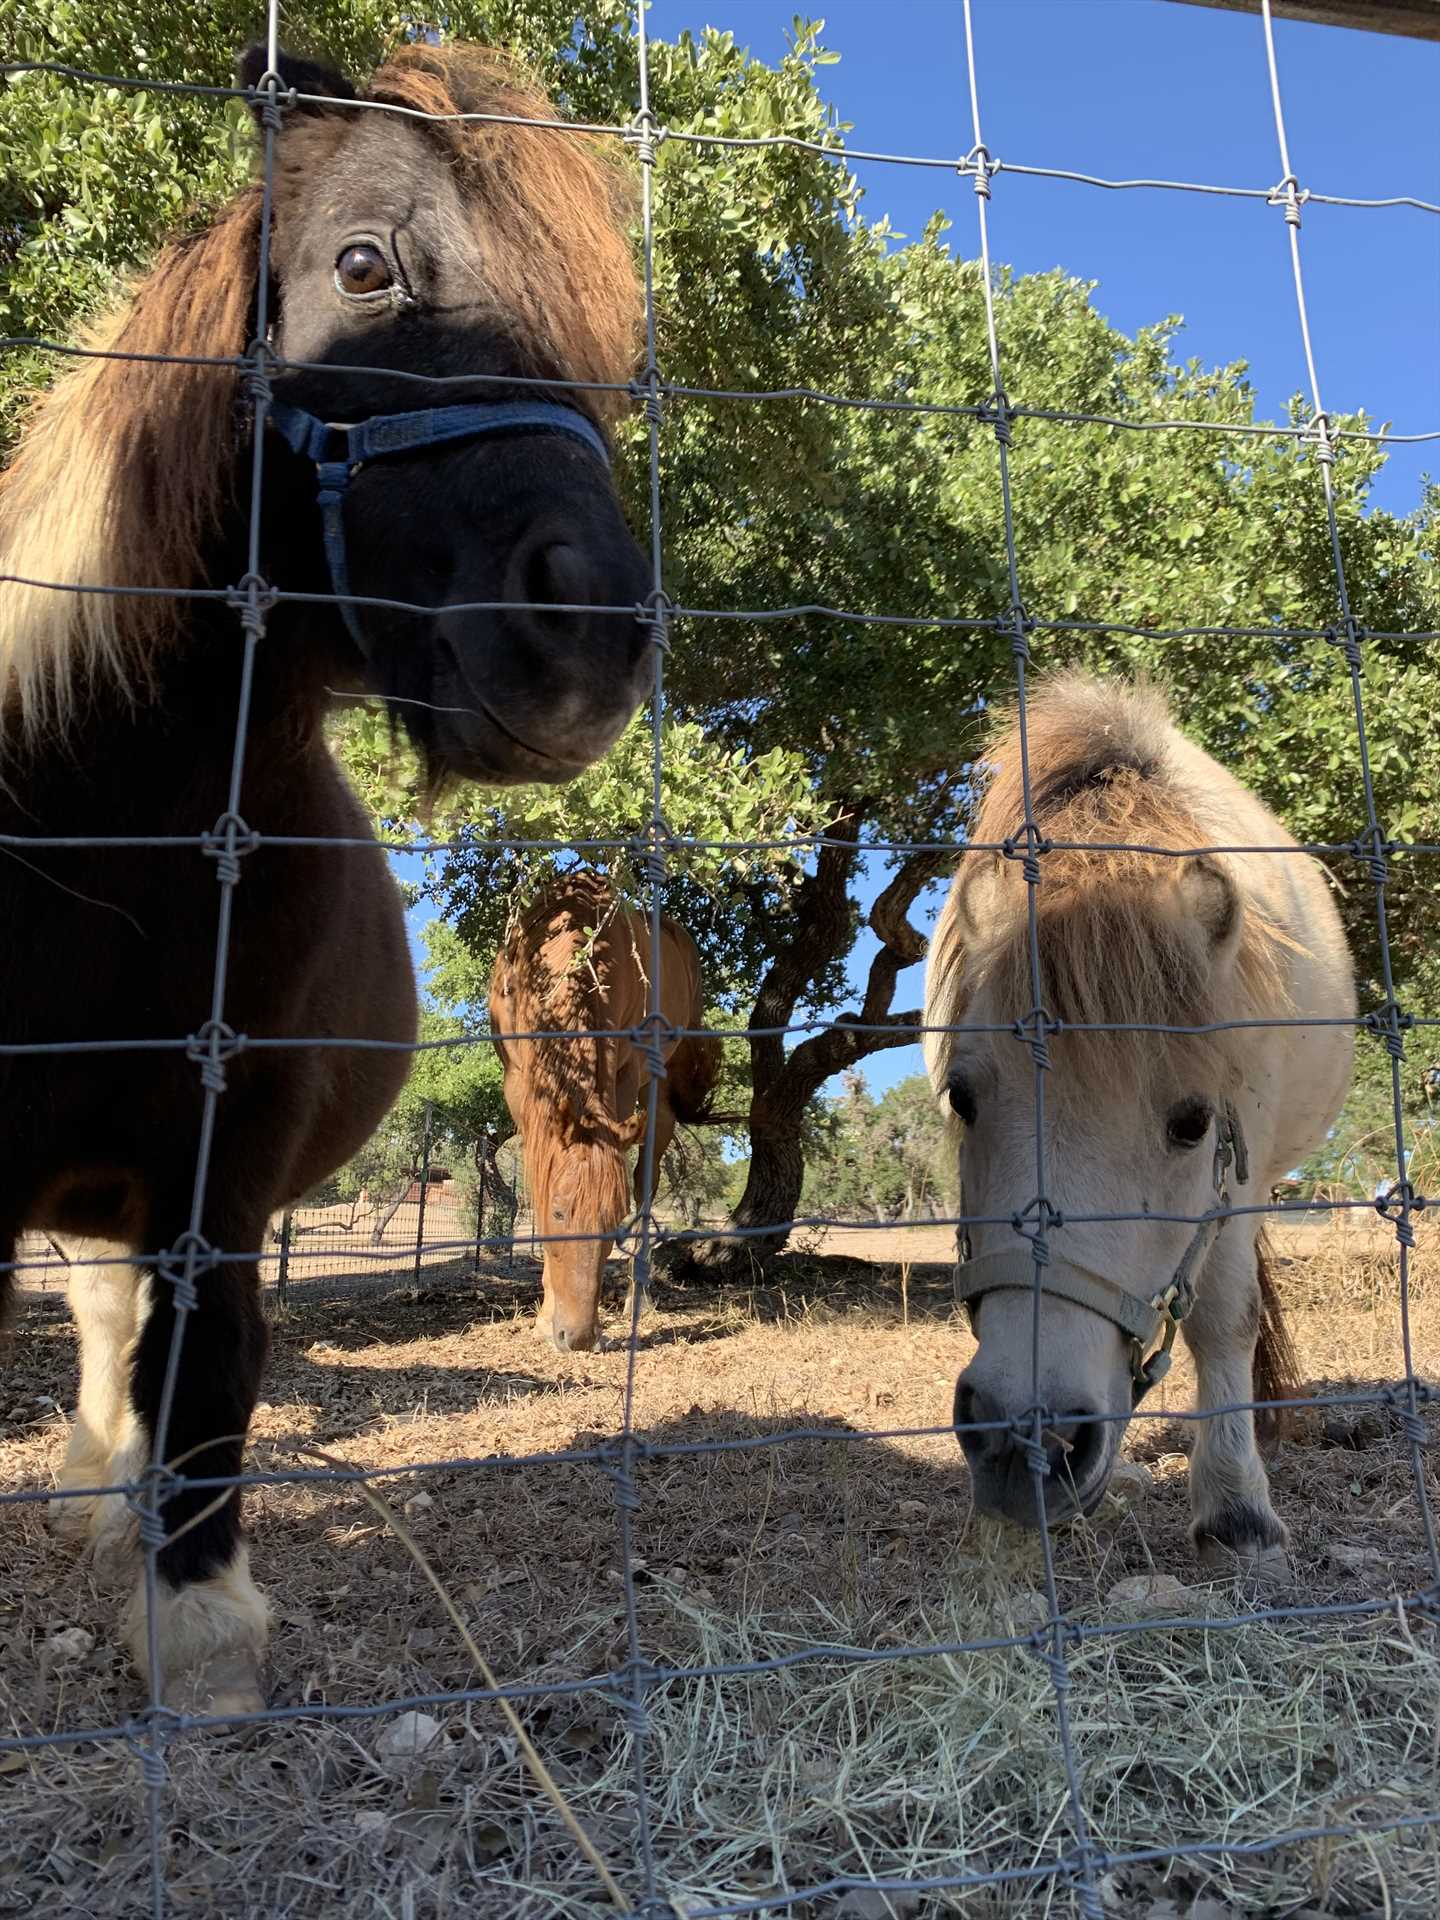 Buttercup and Jelly Bean are rescued miniature horses who have found a comfortable forever home on Tabasco Ranch.